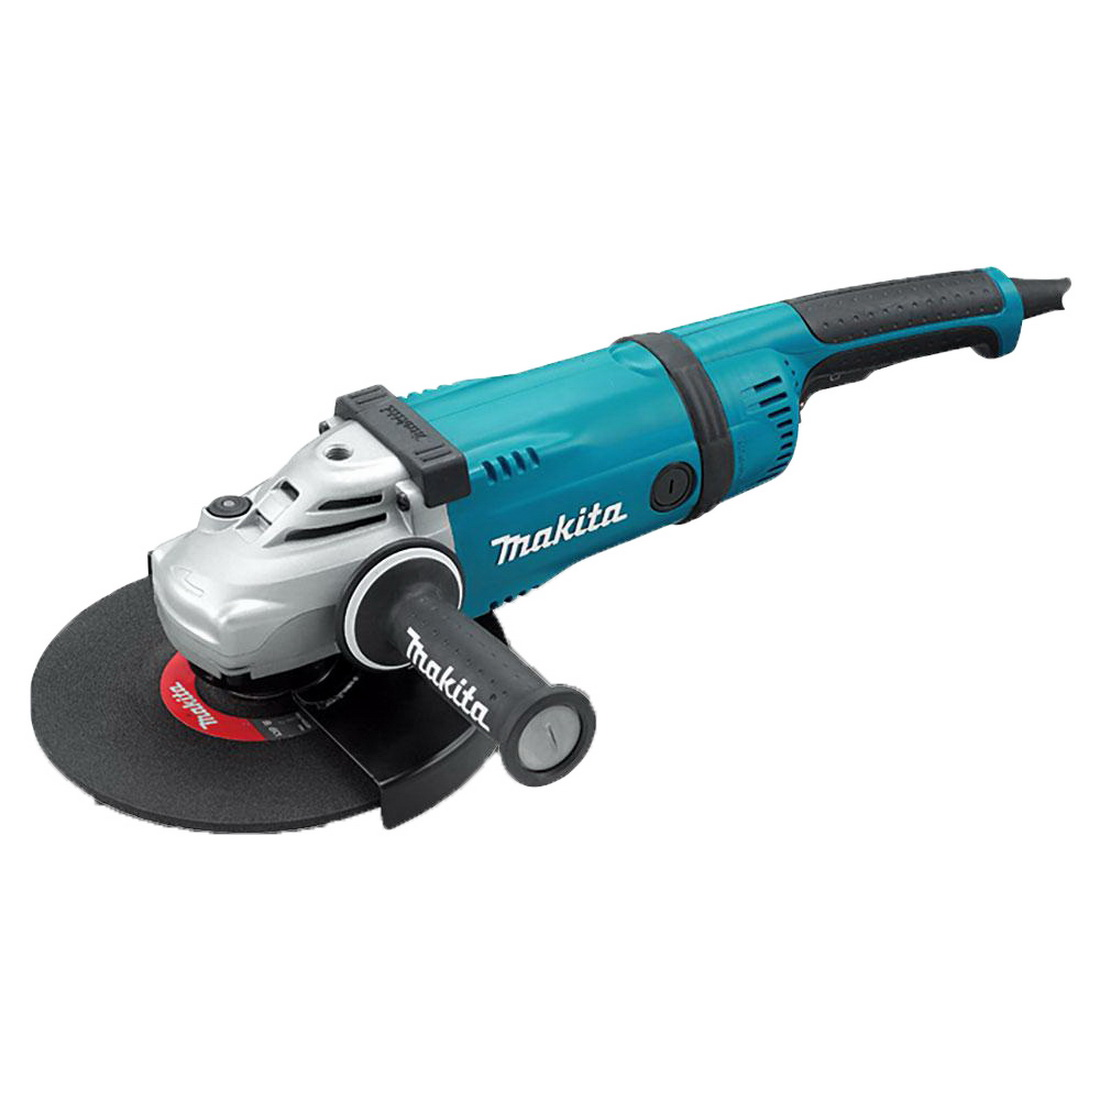 Angle Grinder 230mm 2400W 6600rpm